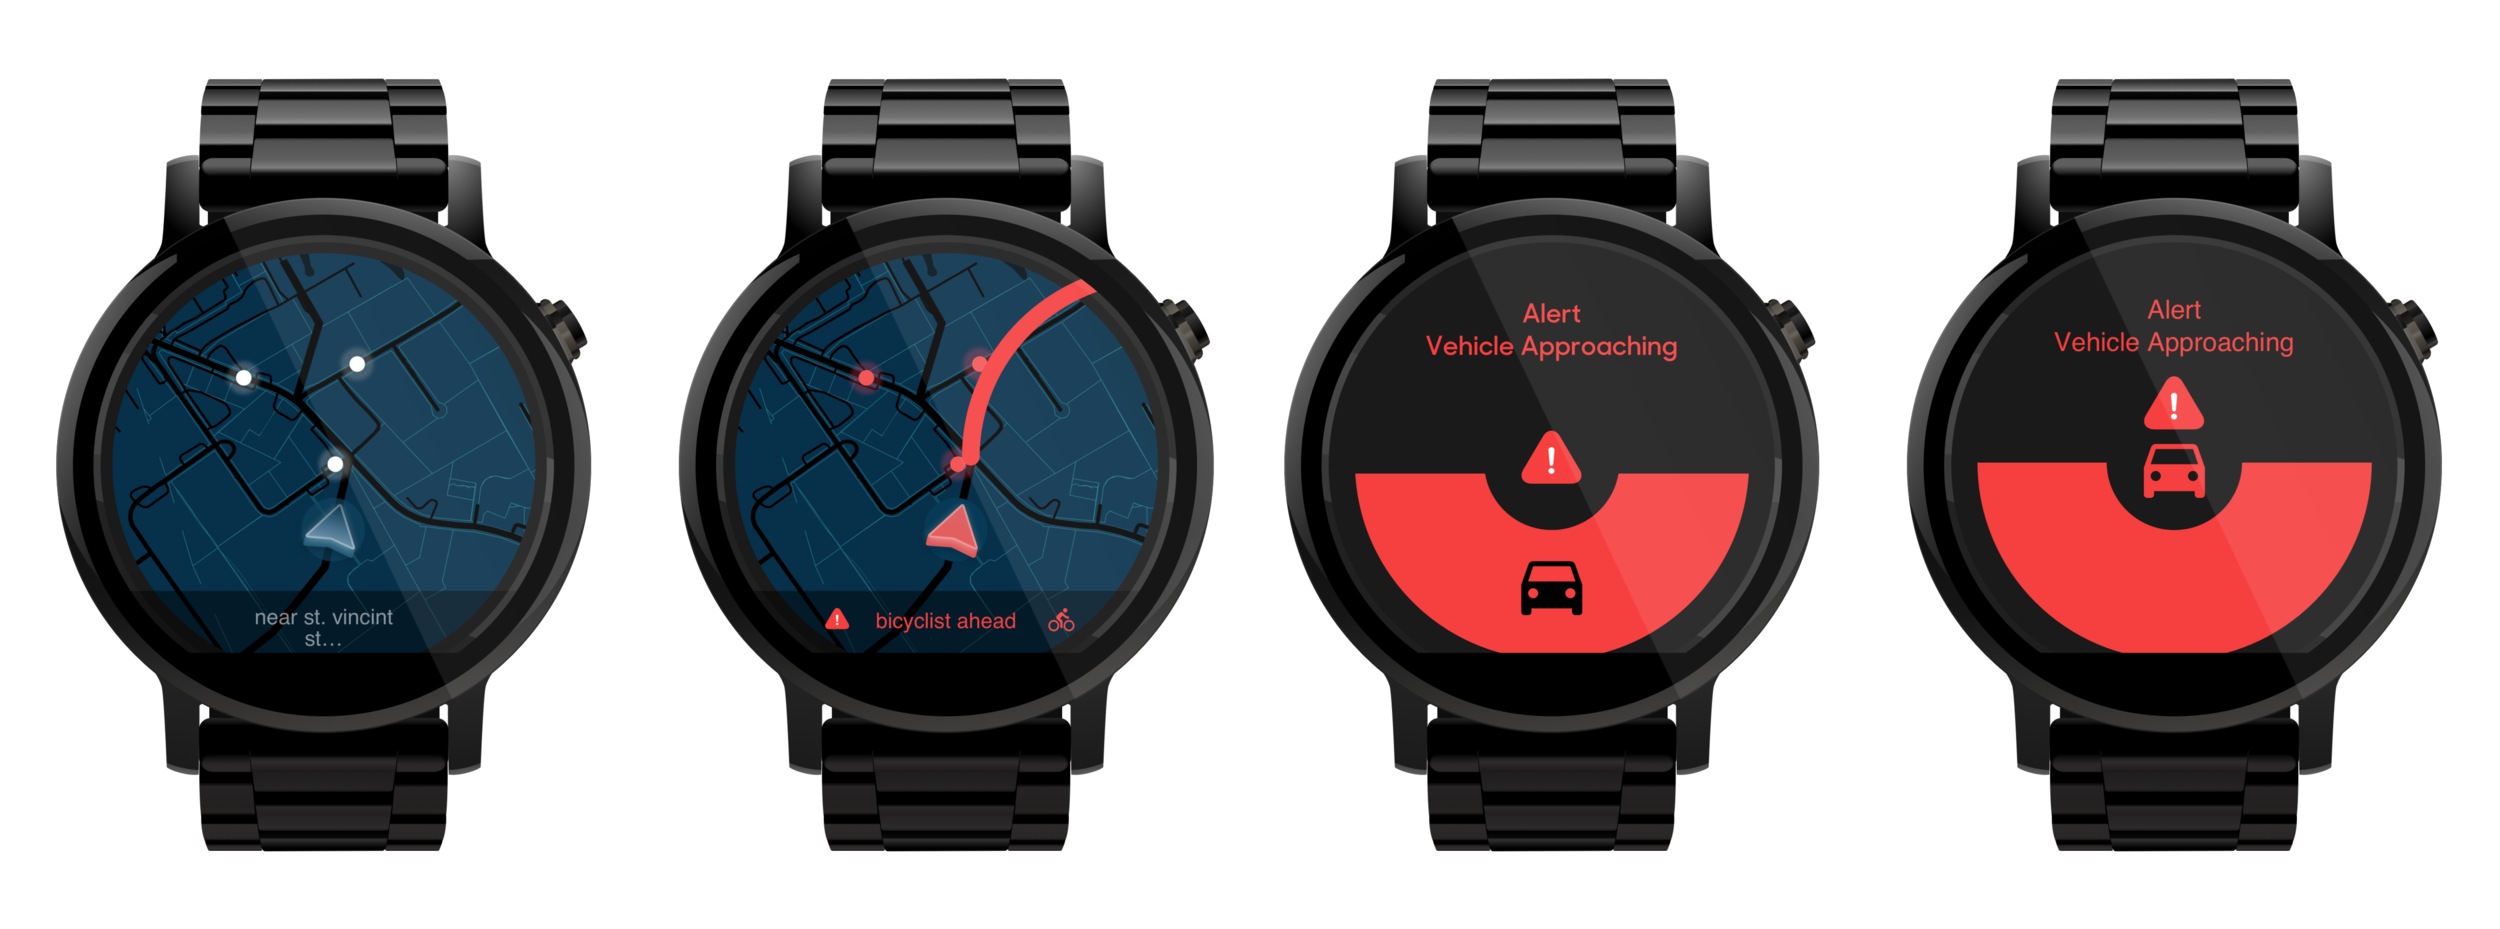 Androidware examples, demonstrating how the active safety feature could work across other wearable systems.